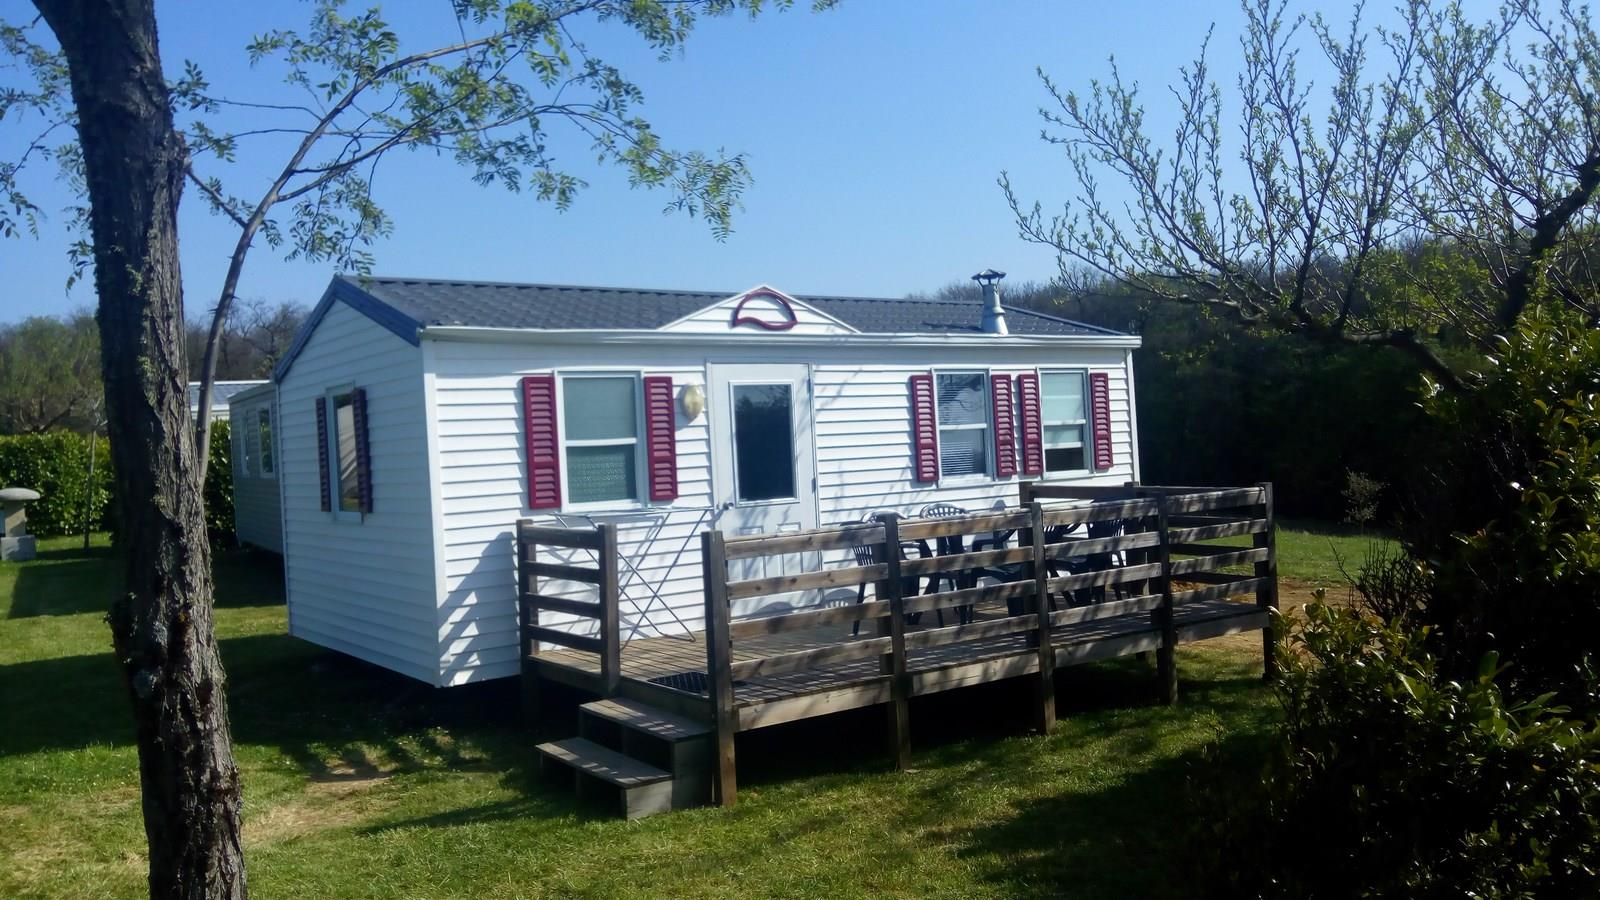 Accommodation - Mobil-Home 2 Chambres O'hara Ophea 704 26M2 + Grande Terrasse (1 Modèle Sur Le Camping) - Camping Domaine Saint Laurent